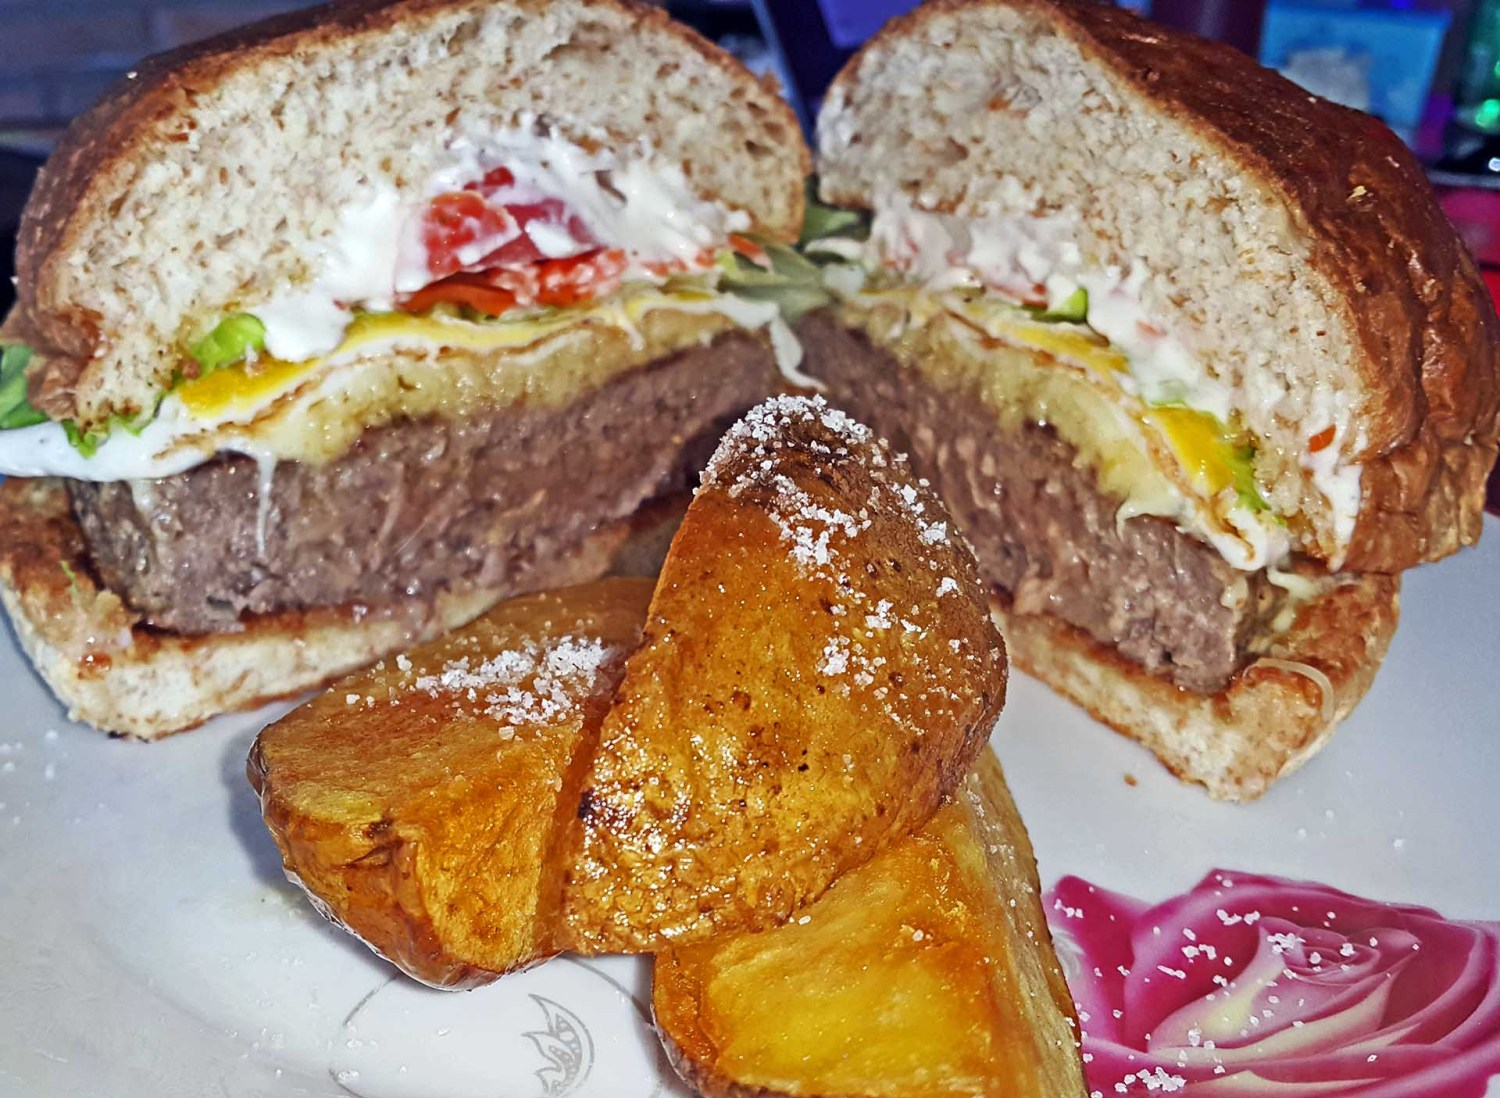 The Big Beef Burger Only At The Club House Bali in Sanur